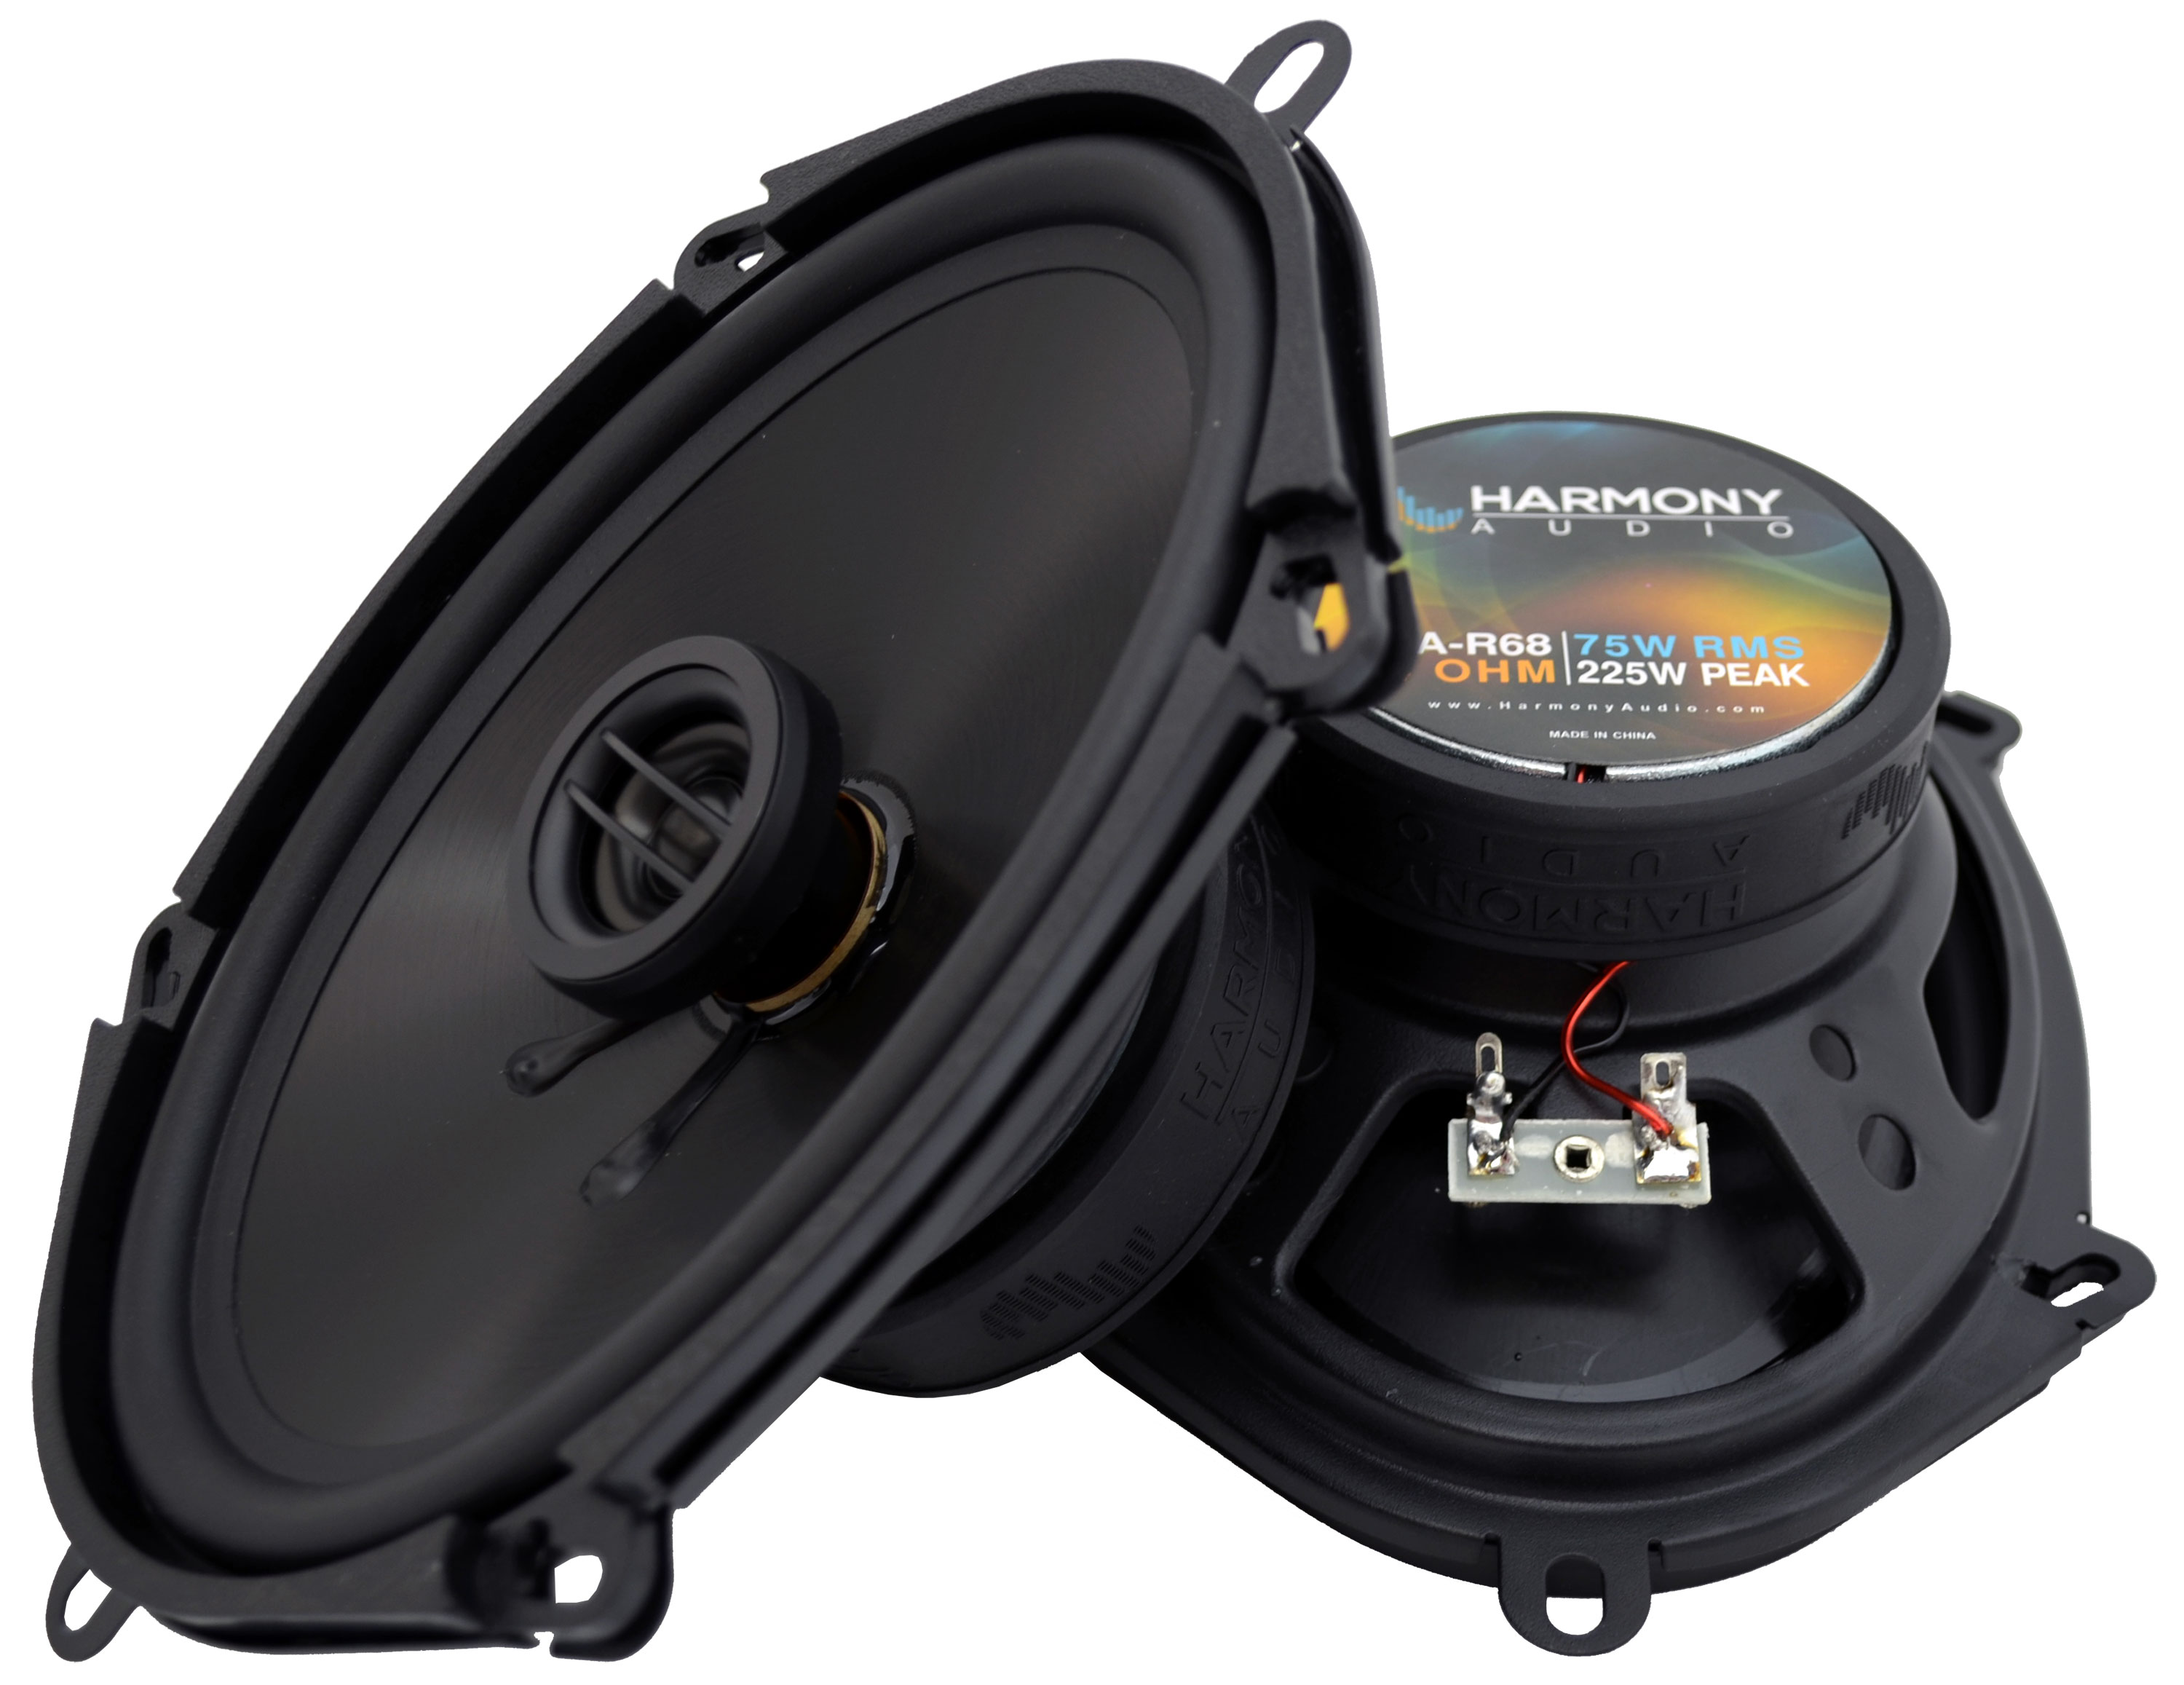 Fits Ford Taurus 2008-2009 Rear Door Replacement Harmony HA-R68 Speakers New